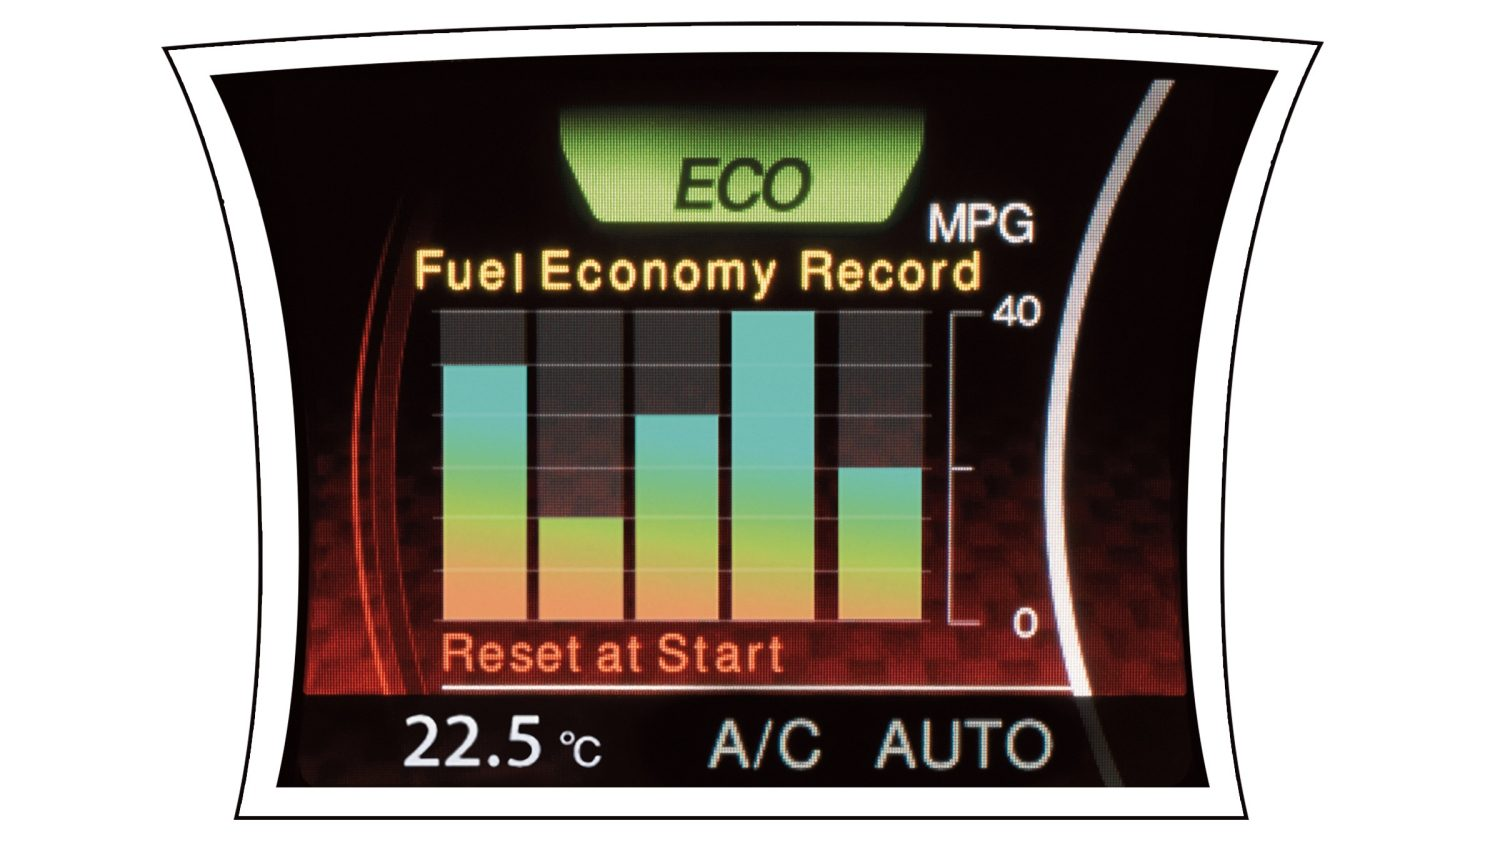 2018 Nissan JUKE fuel consumption screen